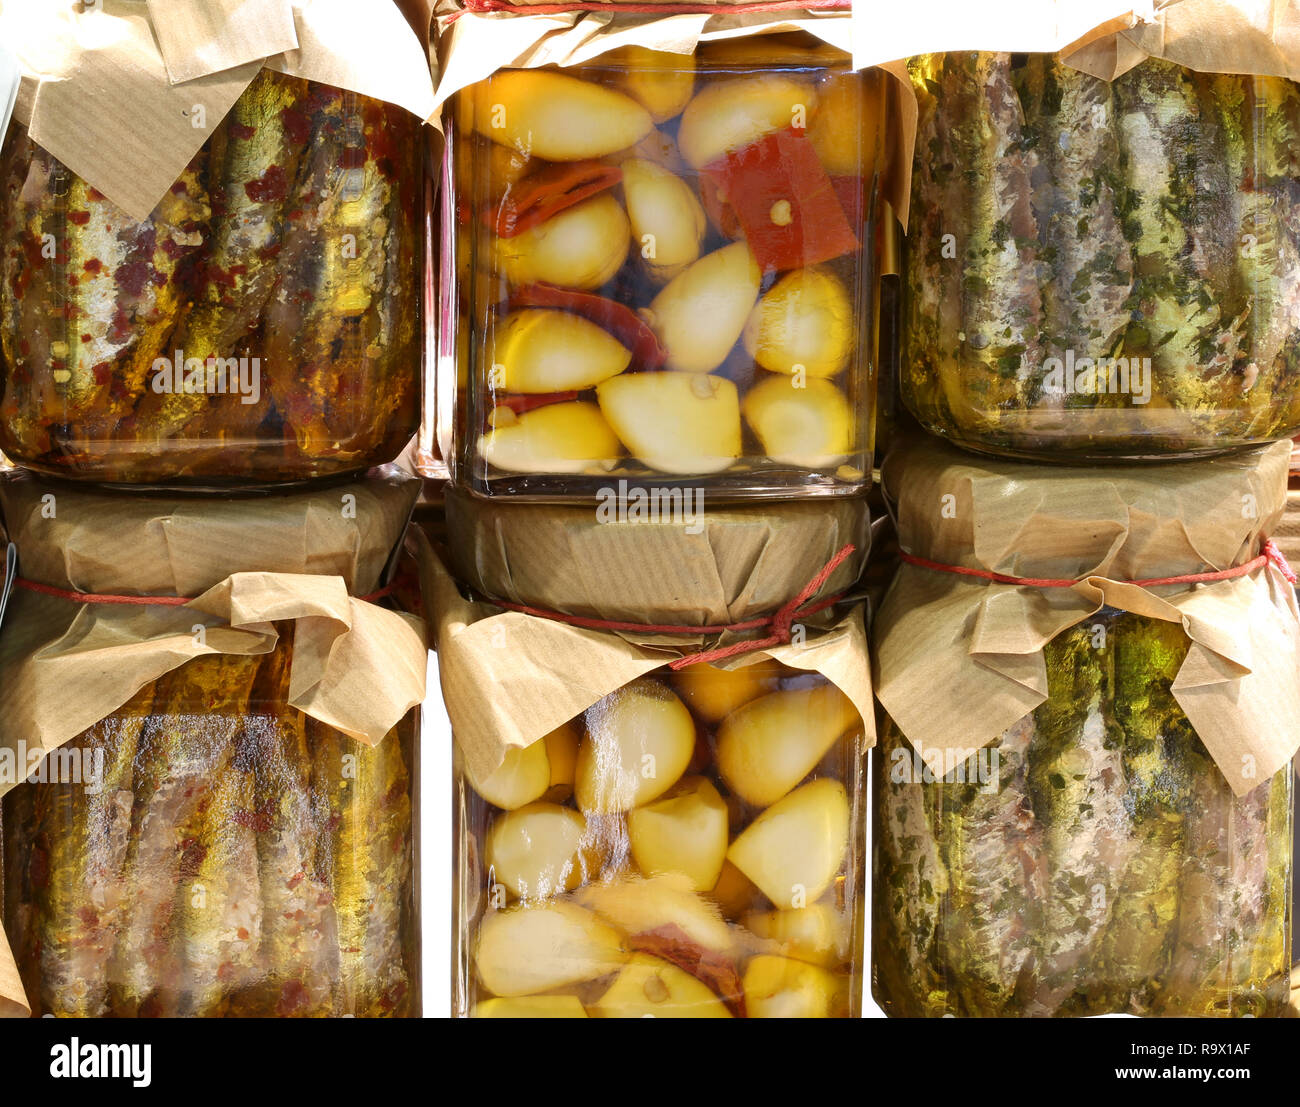 many jars with garlic cloves with peppers and marinated anchovies prepared by hand - Stock Image